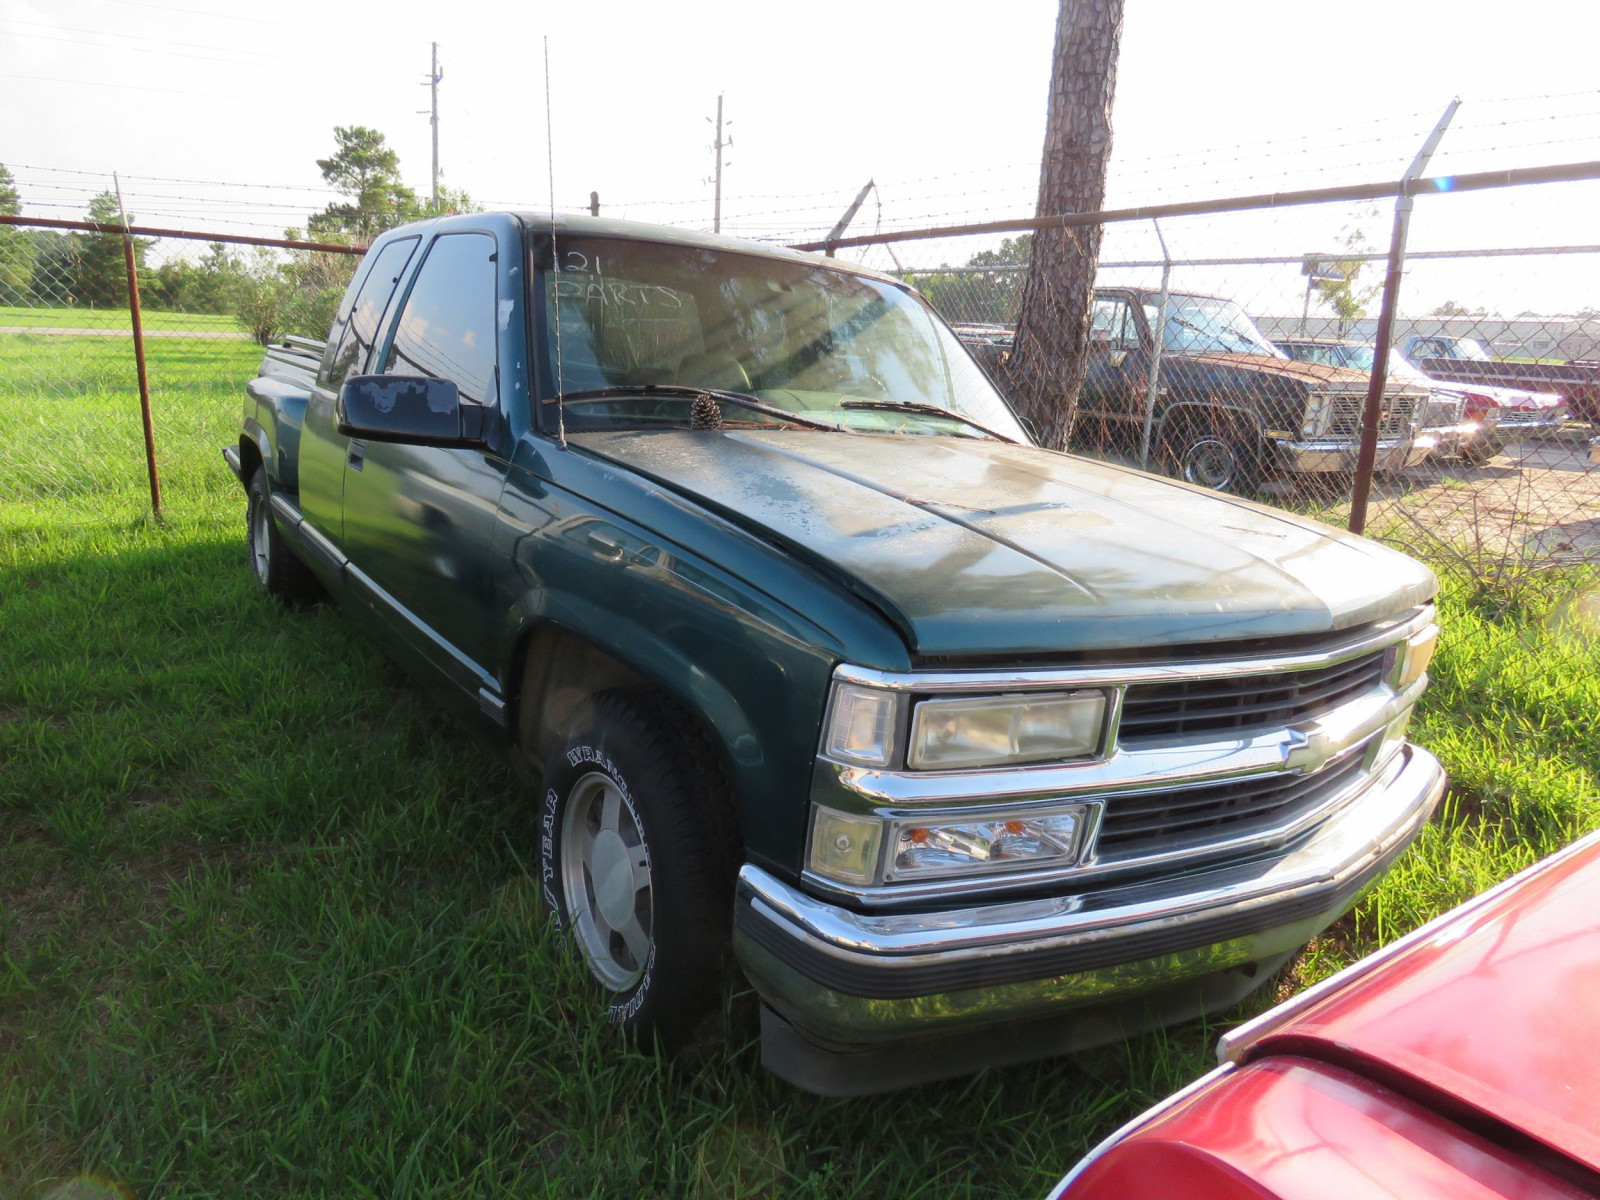 1995 Chevrolet Stepside Pickup - Image 1